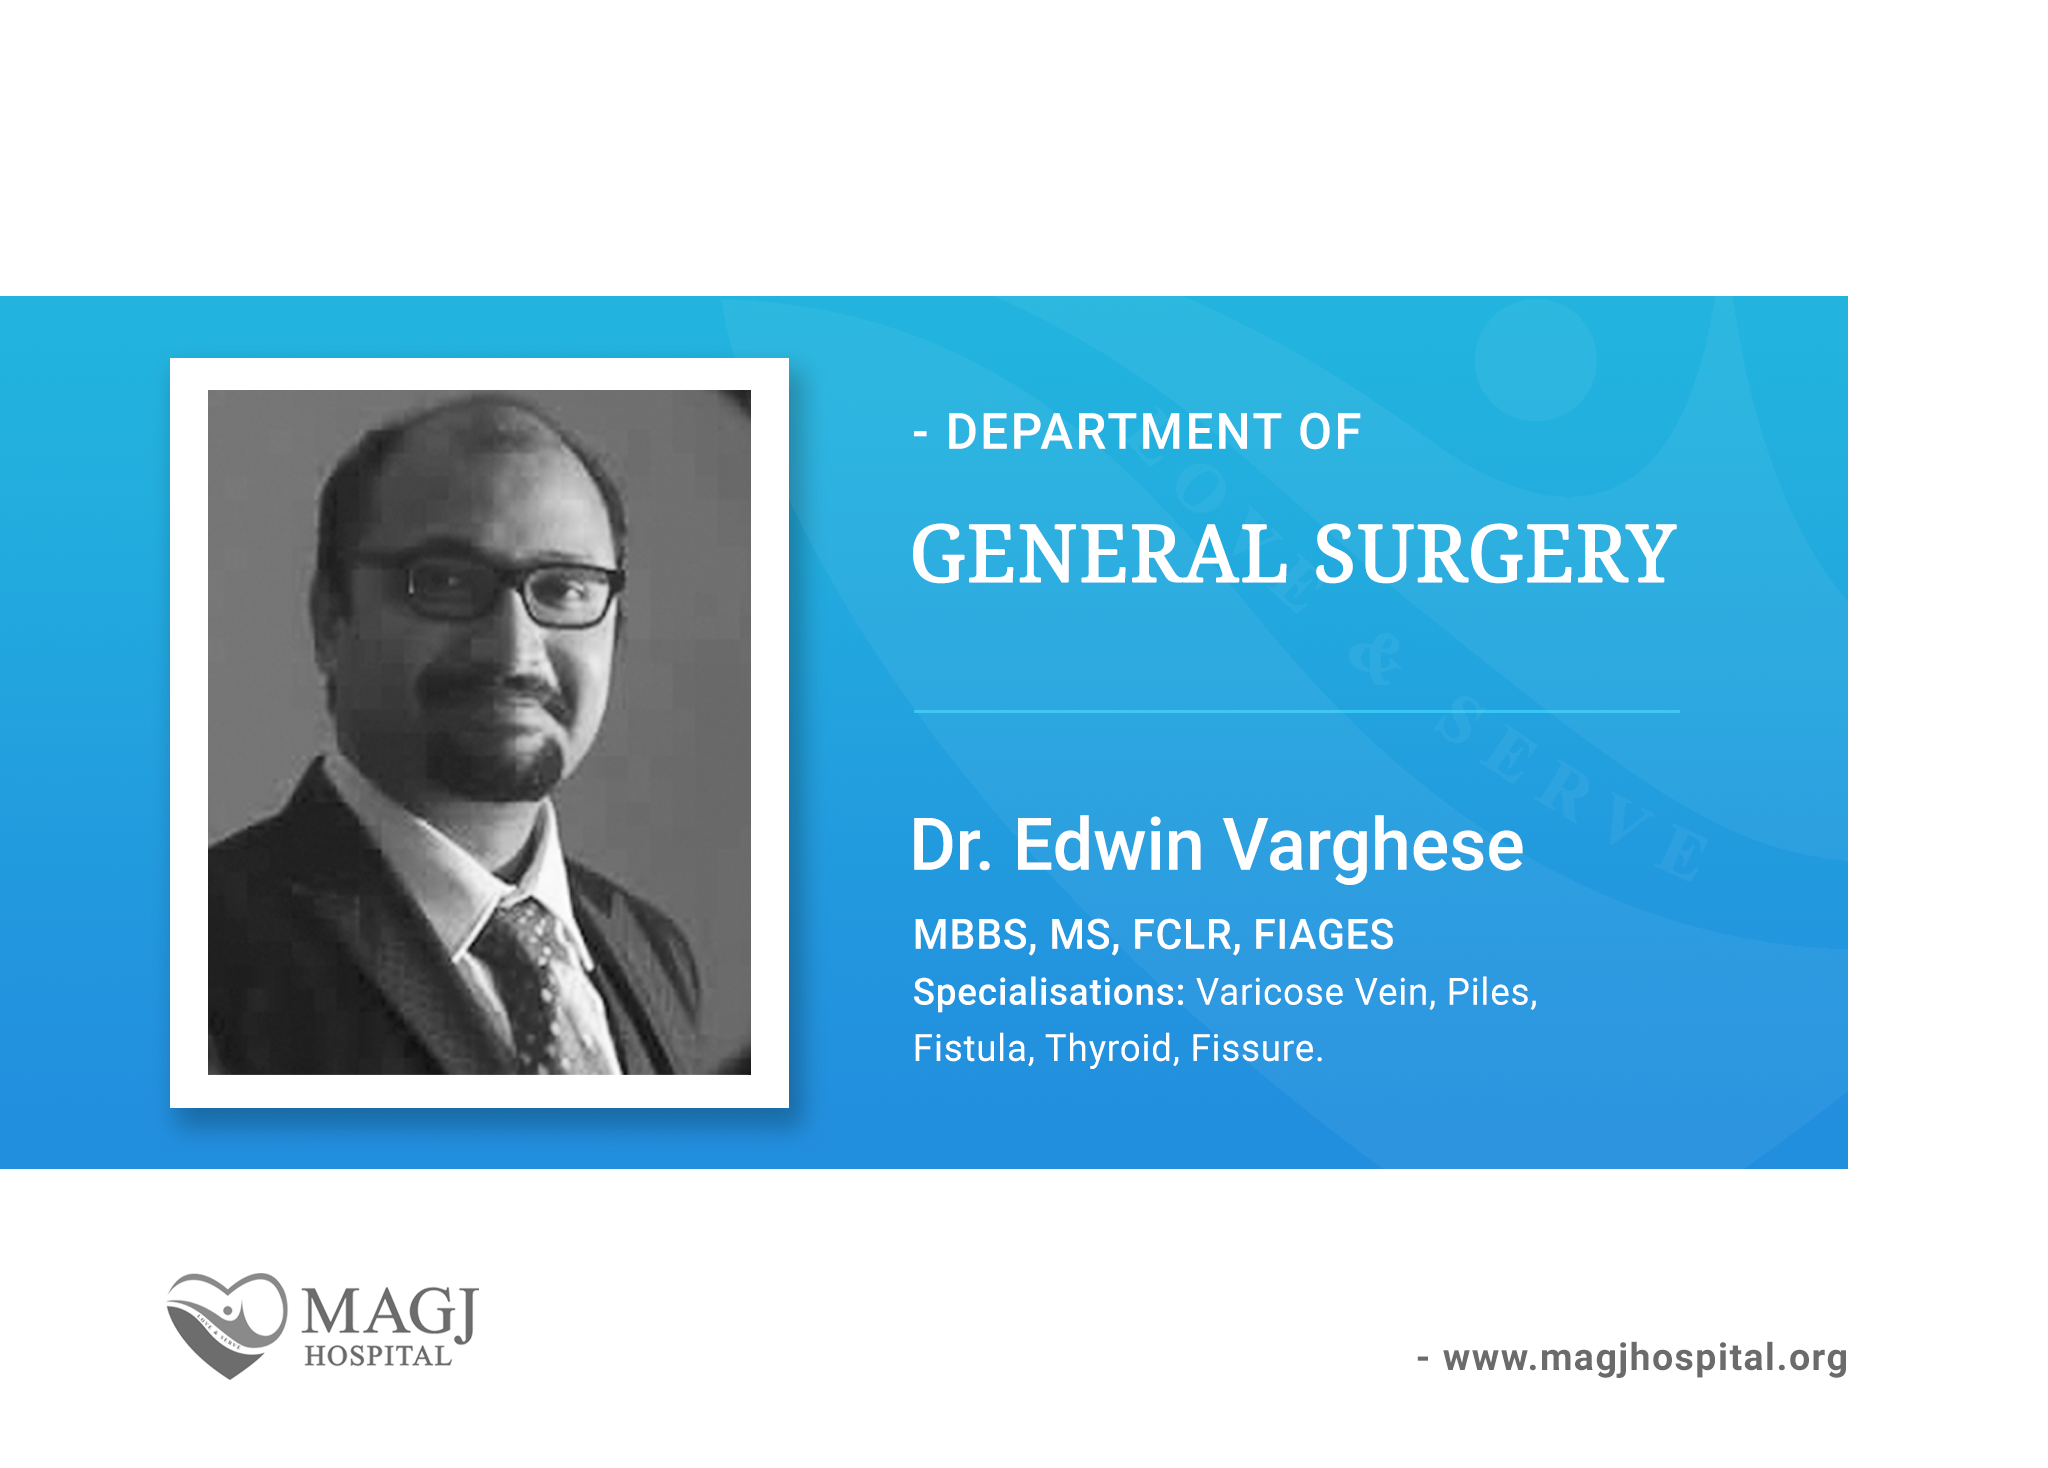 Dr. Edwin Varghese (MBBS, MS, FCLR, FIAGES), Specialist Surgeon, our new family member